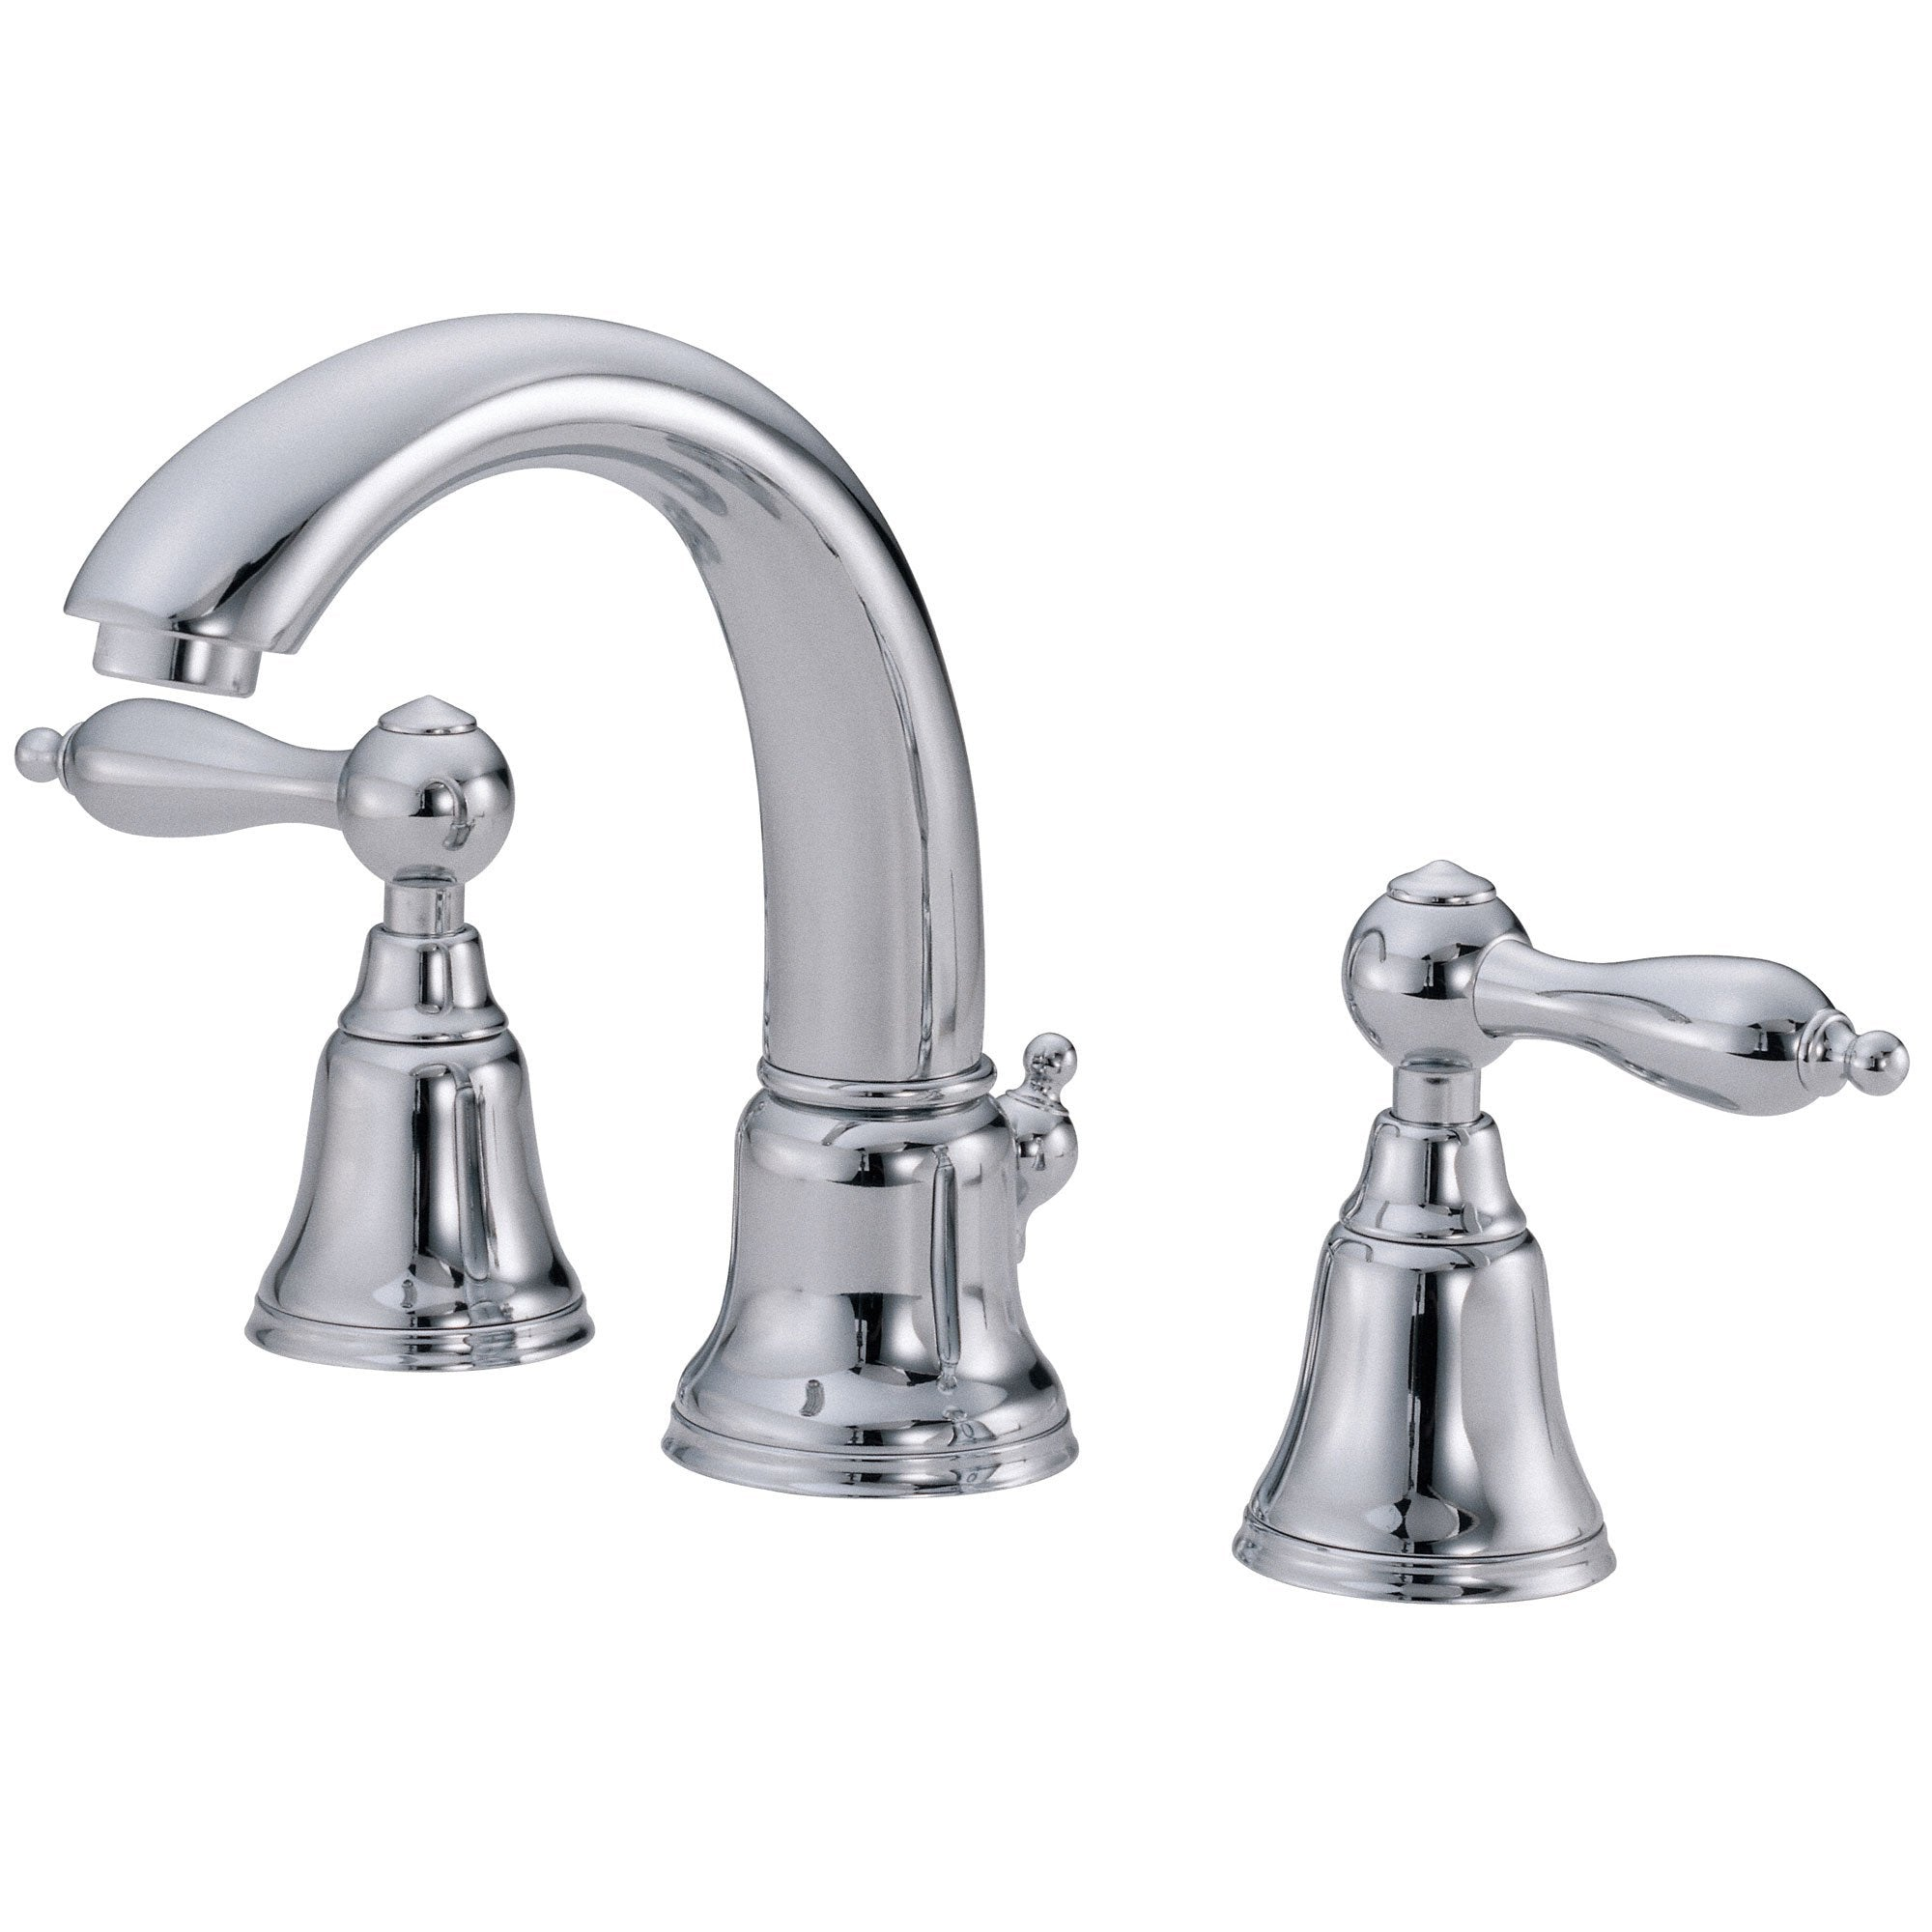 Danze Fairmont Chrome 2 Handle Widespread Bathroom Sink Faucet with Drain